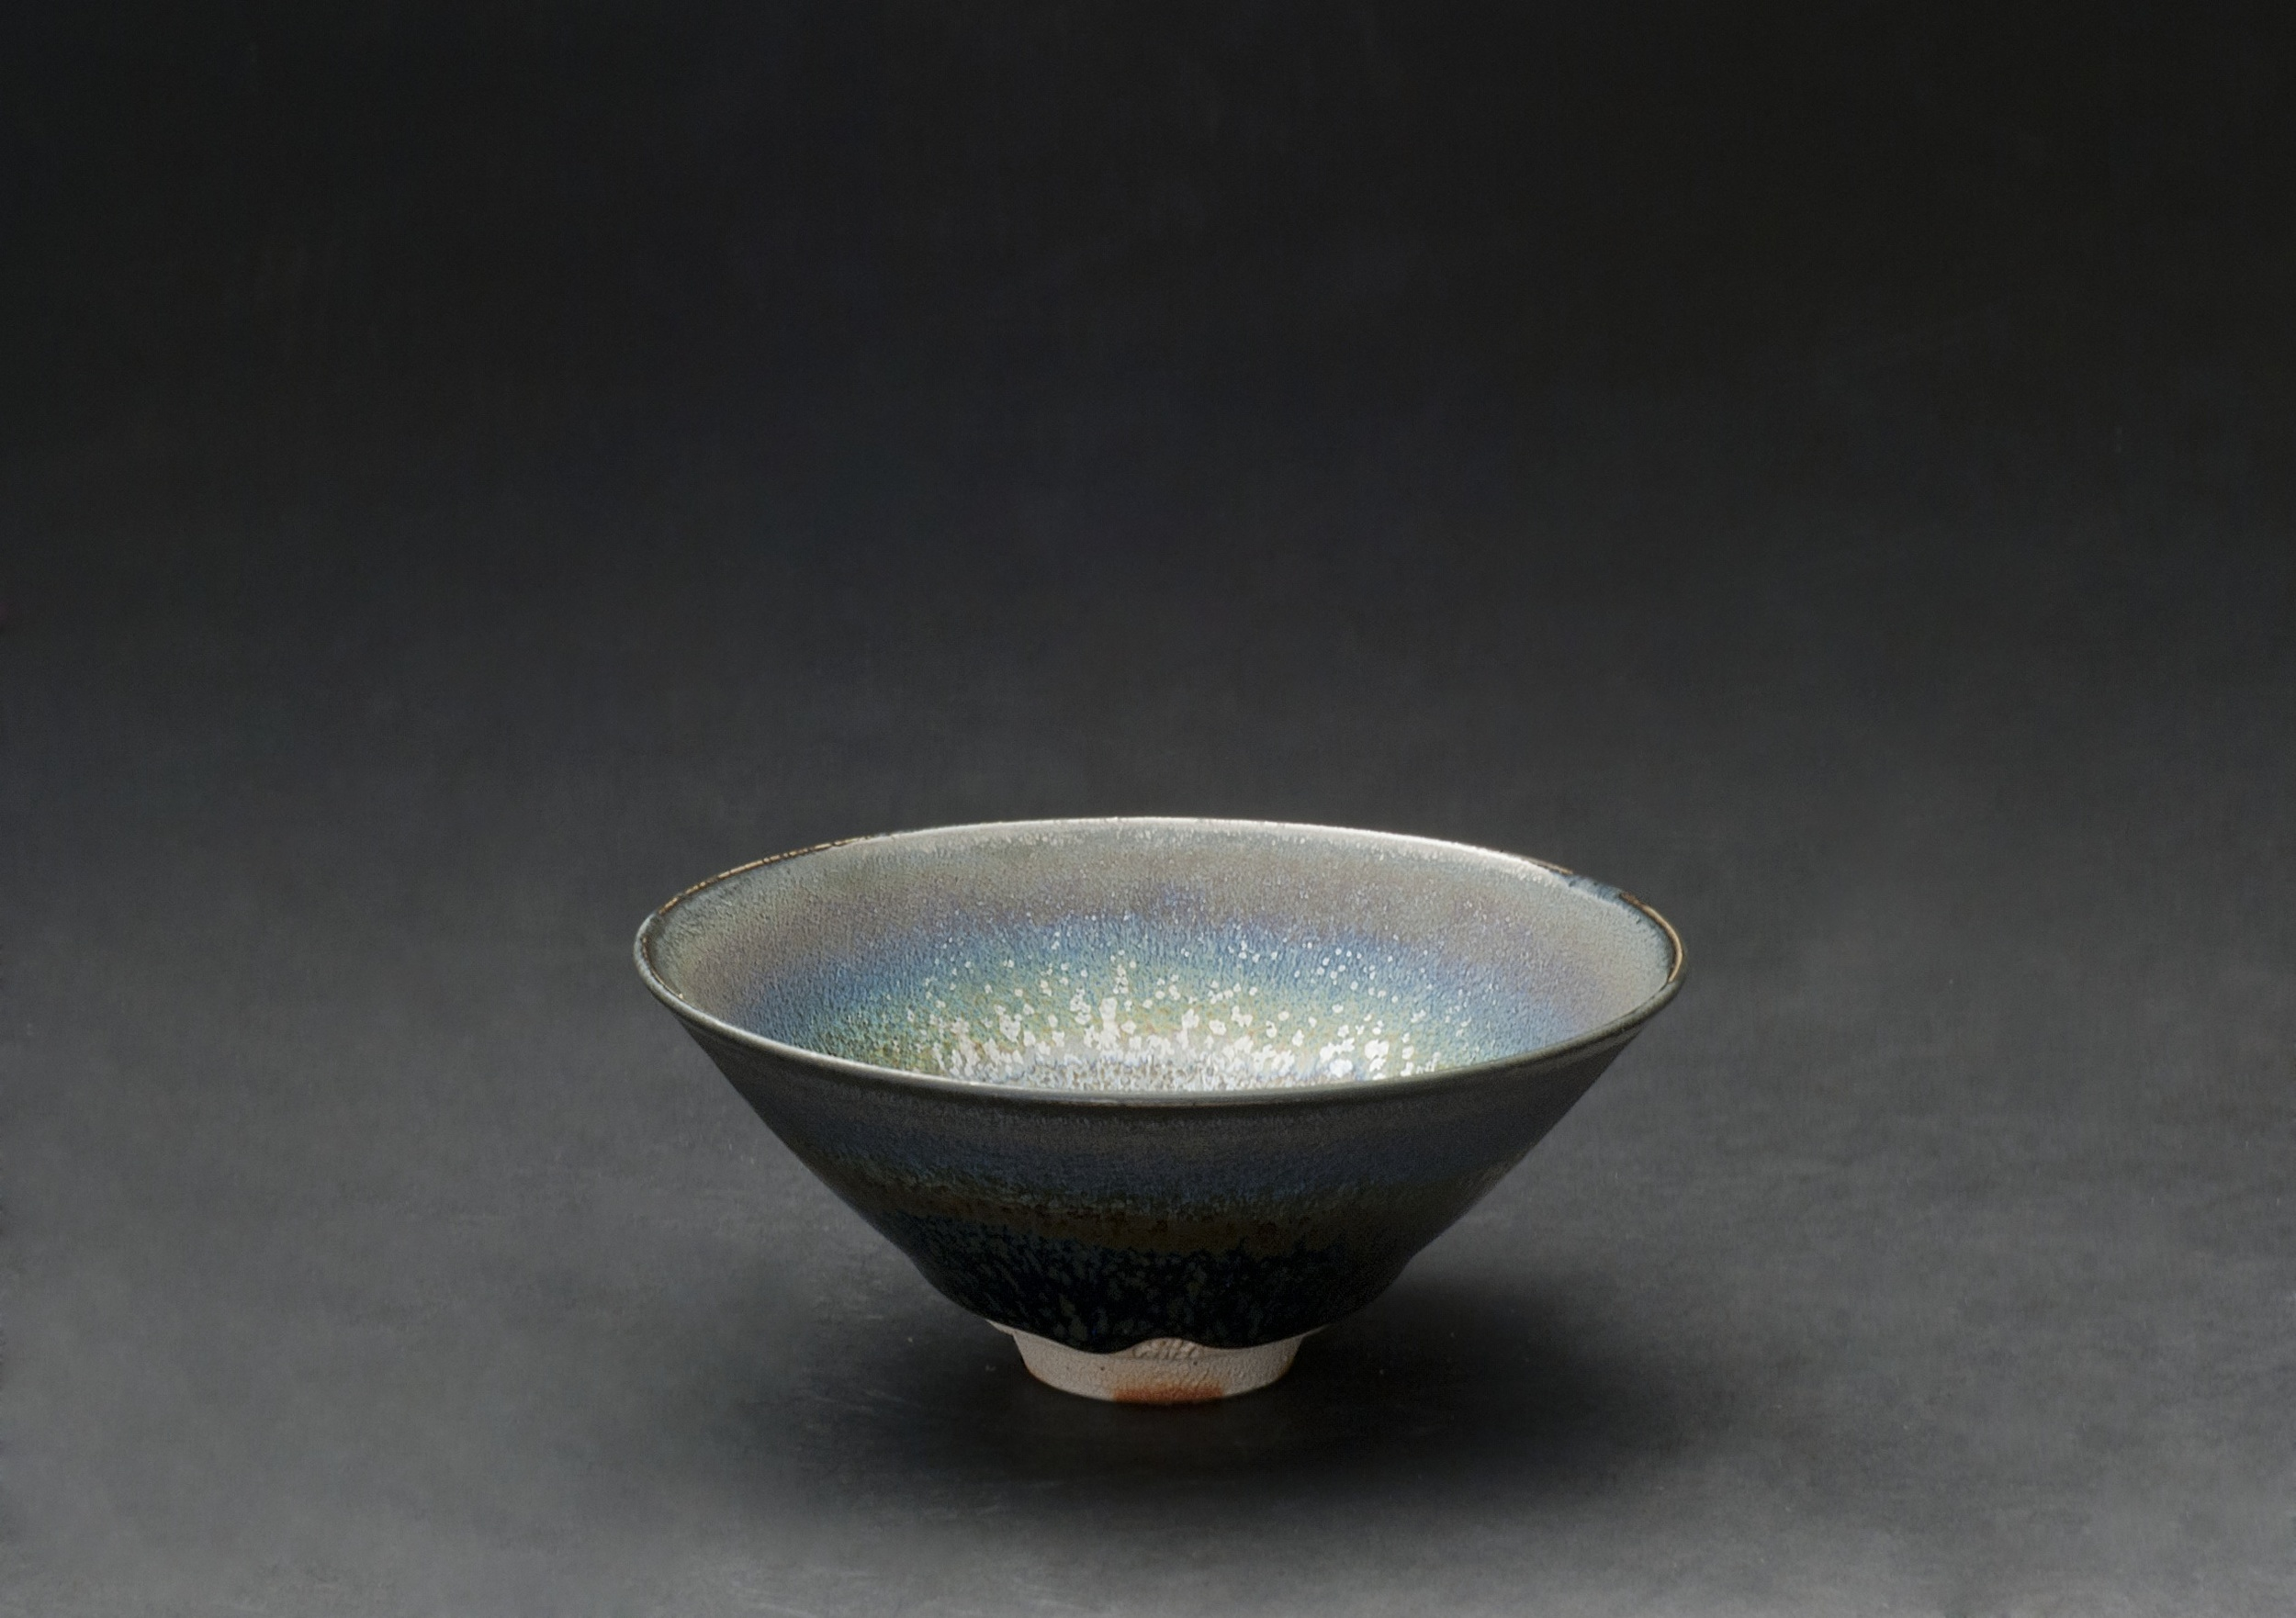 Wasaburo Takahashi    Seiran Tenmoku-yu Chawan  , 2011 Finishing: double dipping with Tenmoku glaze (black colored glaze) and Seiran glaze (blue colored glaze); glaze: Tenmoku-glaze (iron glaze); firing: reduction firing in gas kiln at 1250 C, fired twice 2.5 x 6 inches 6.4 x 15.2 cm WTa 1